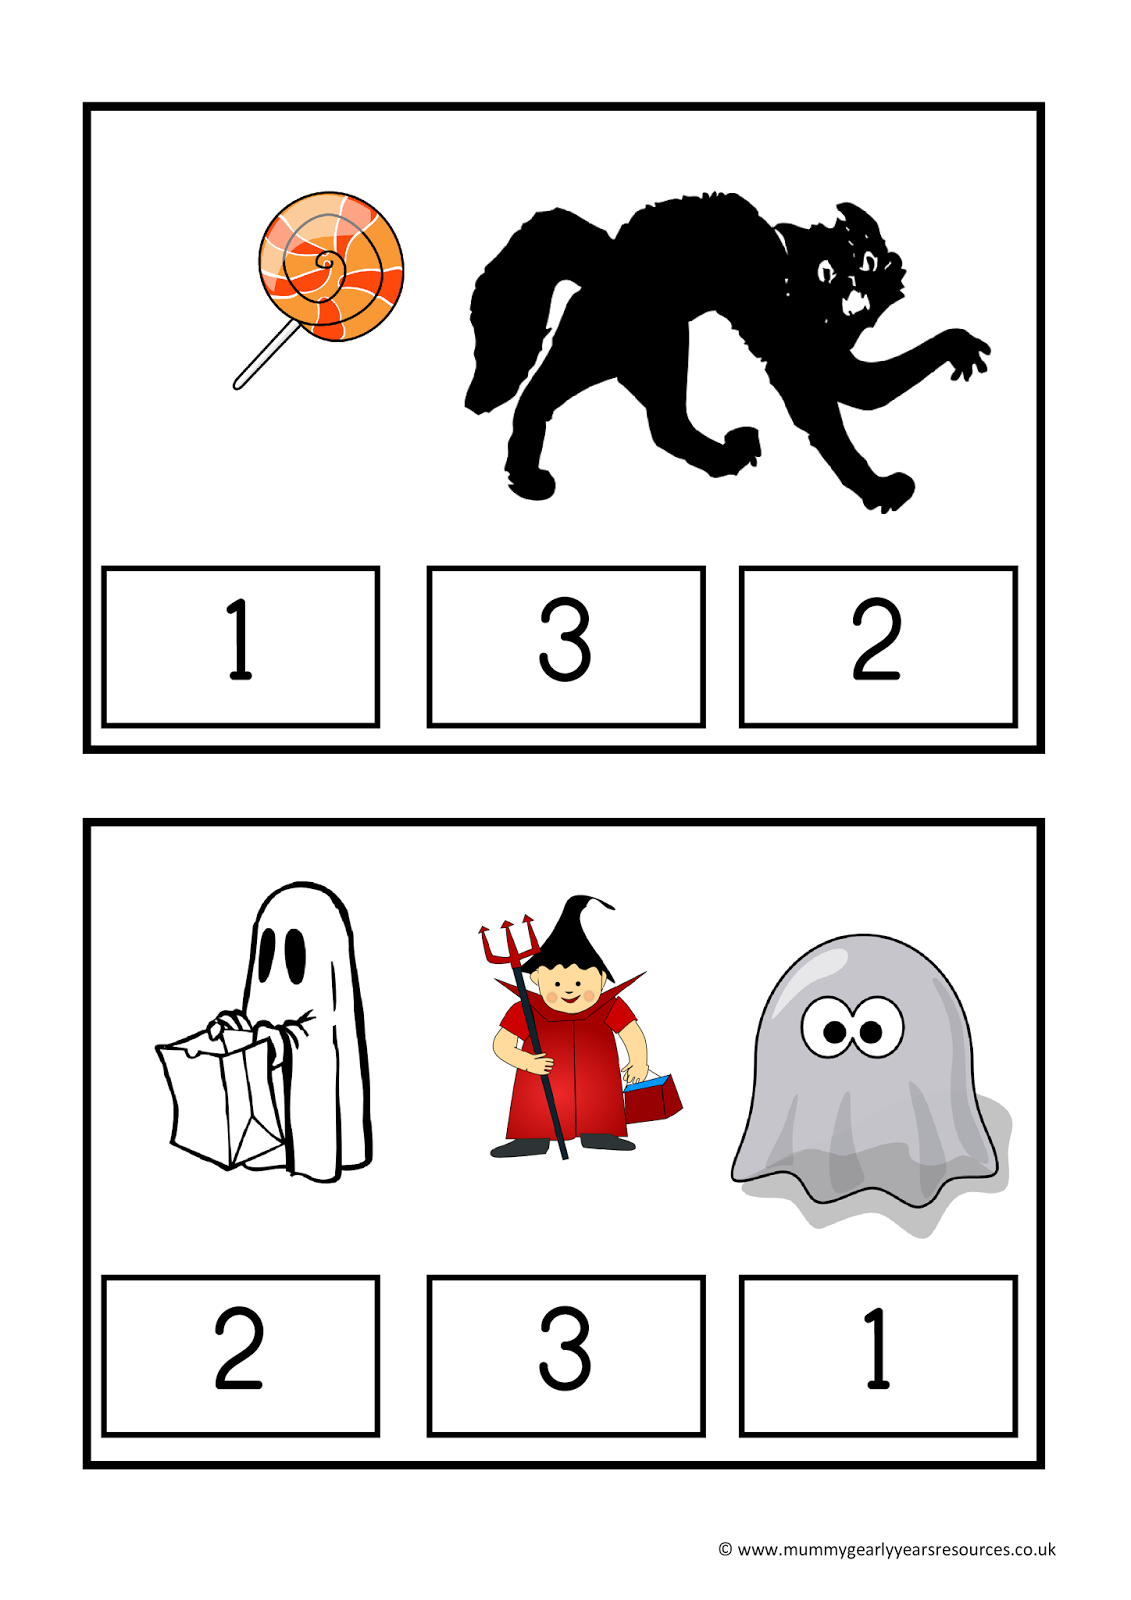 Mummy G early years resources: Halloween count and clip | KBN ...